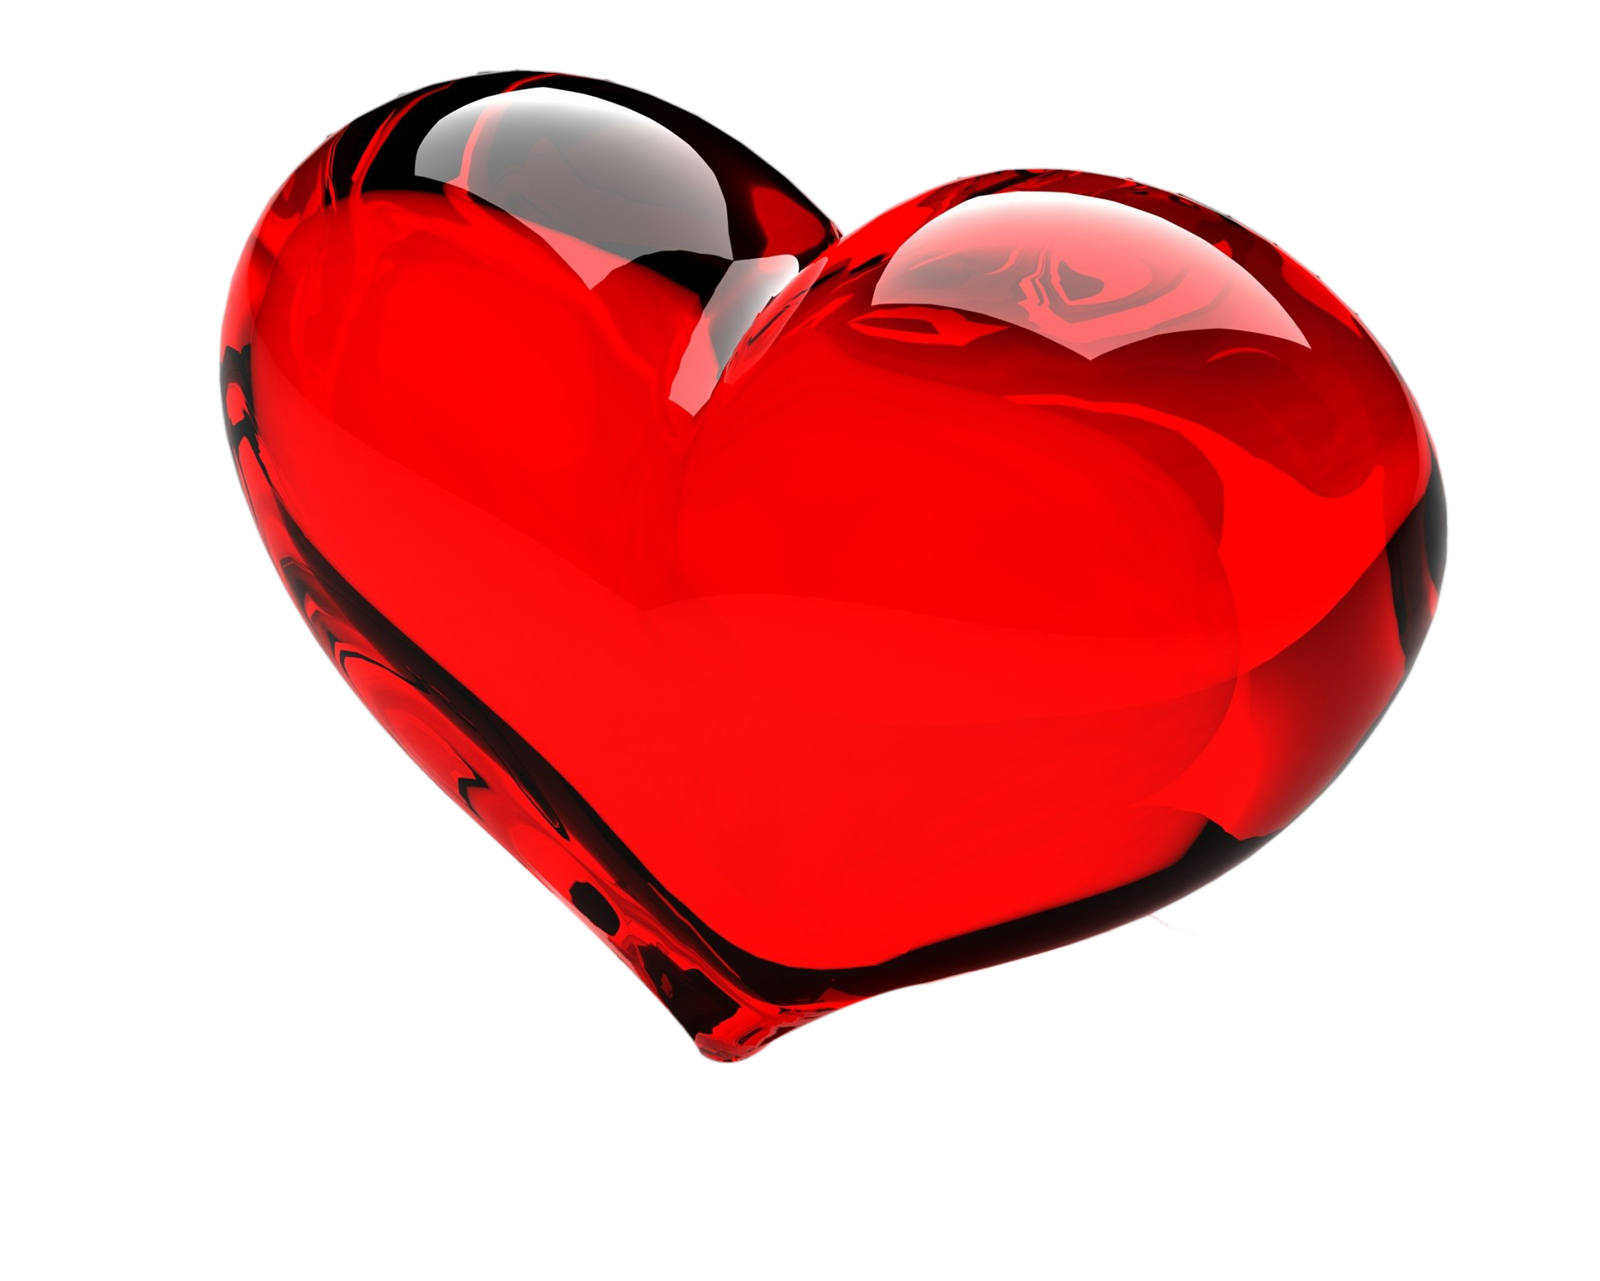 Png images and free. Clipart heart red